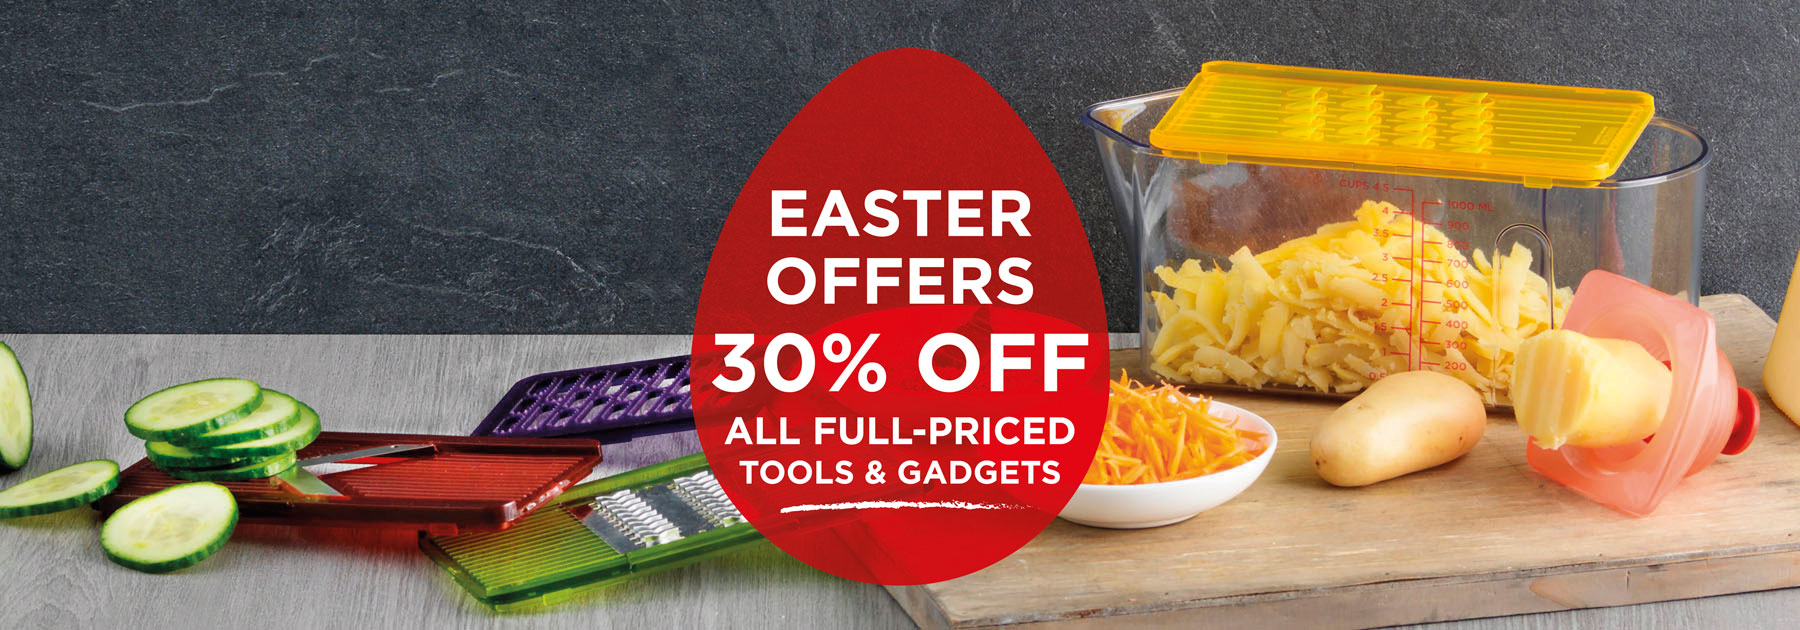 easter, offer, discount, gadgets